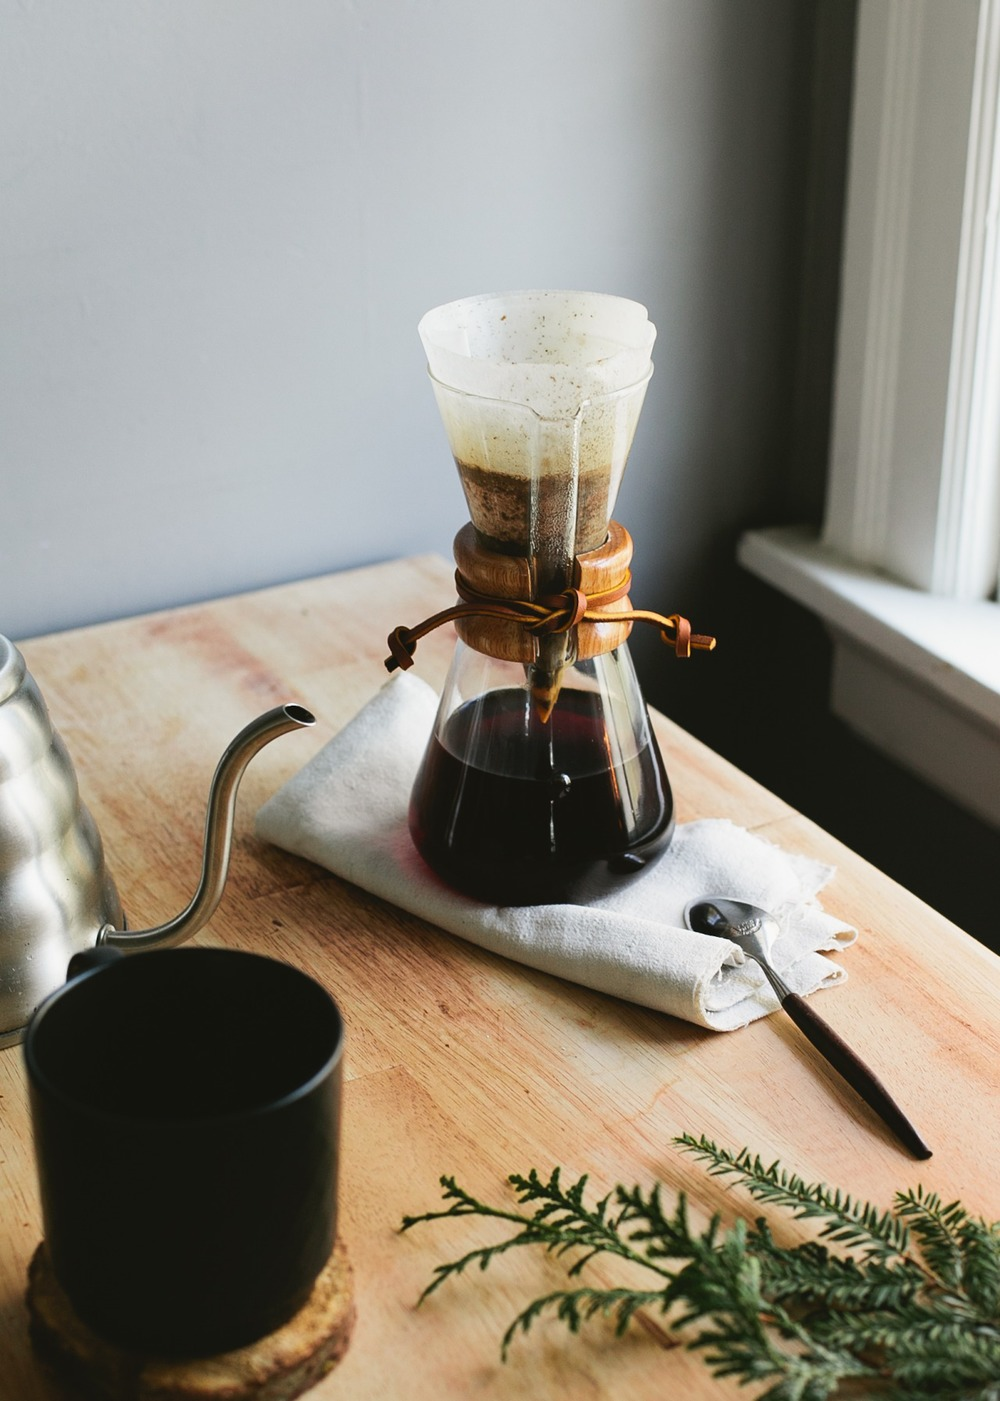 Chemex Pourover Jon's preferred brewing method